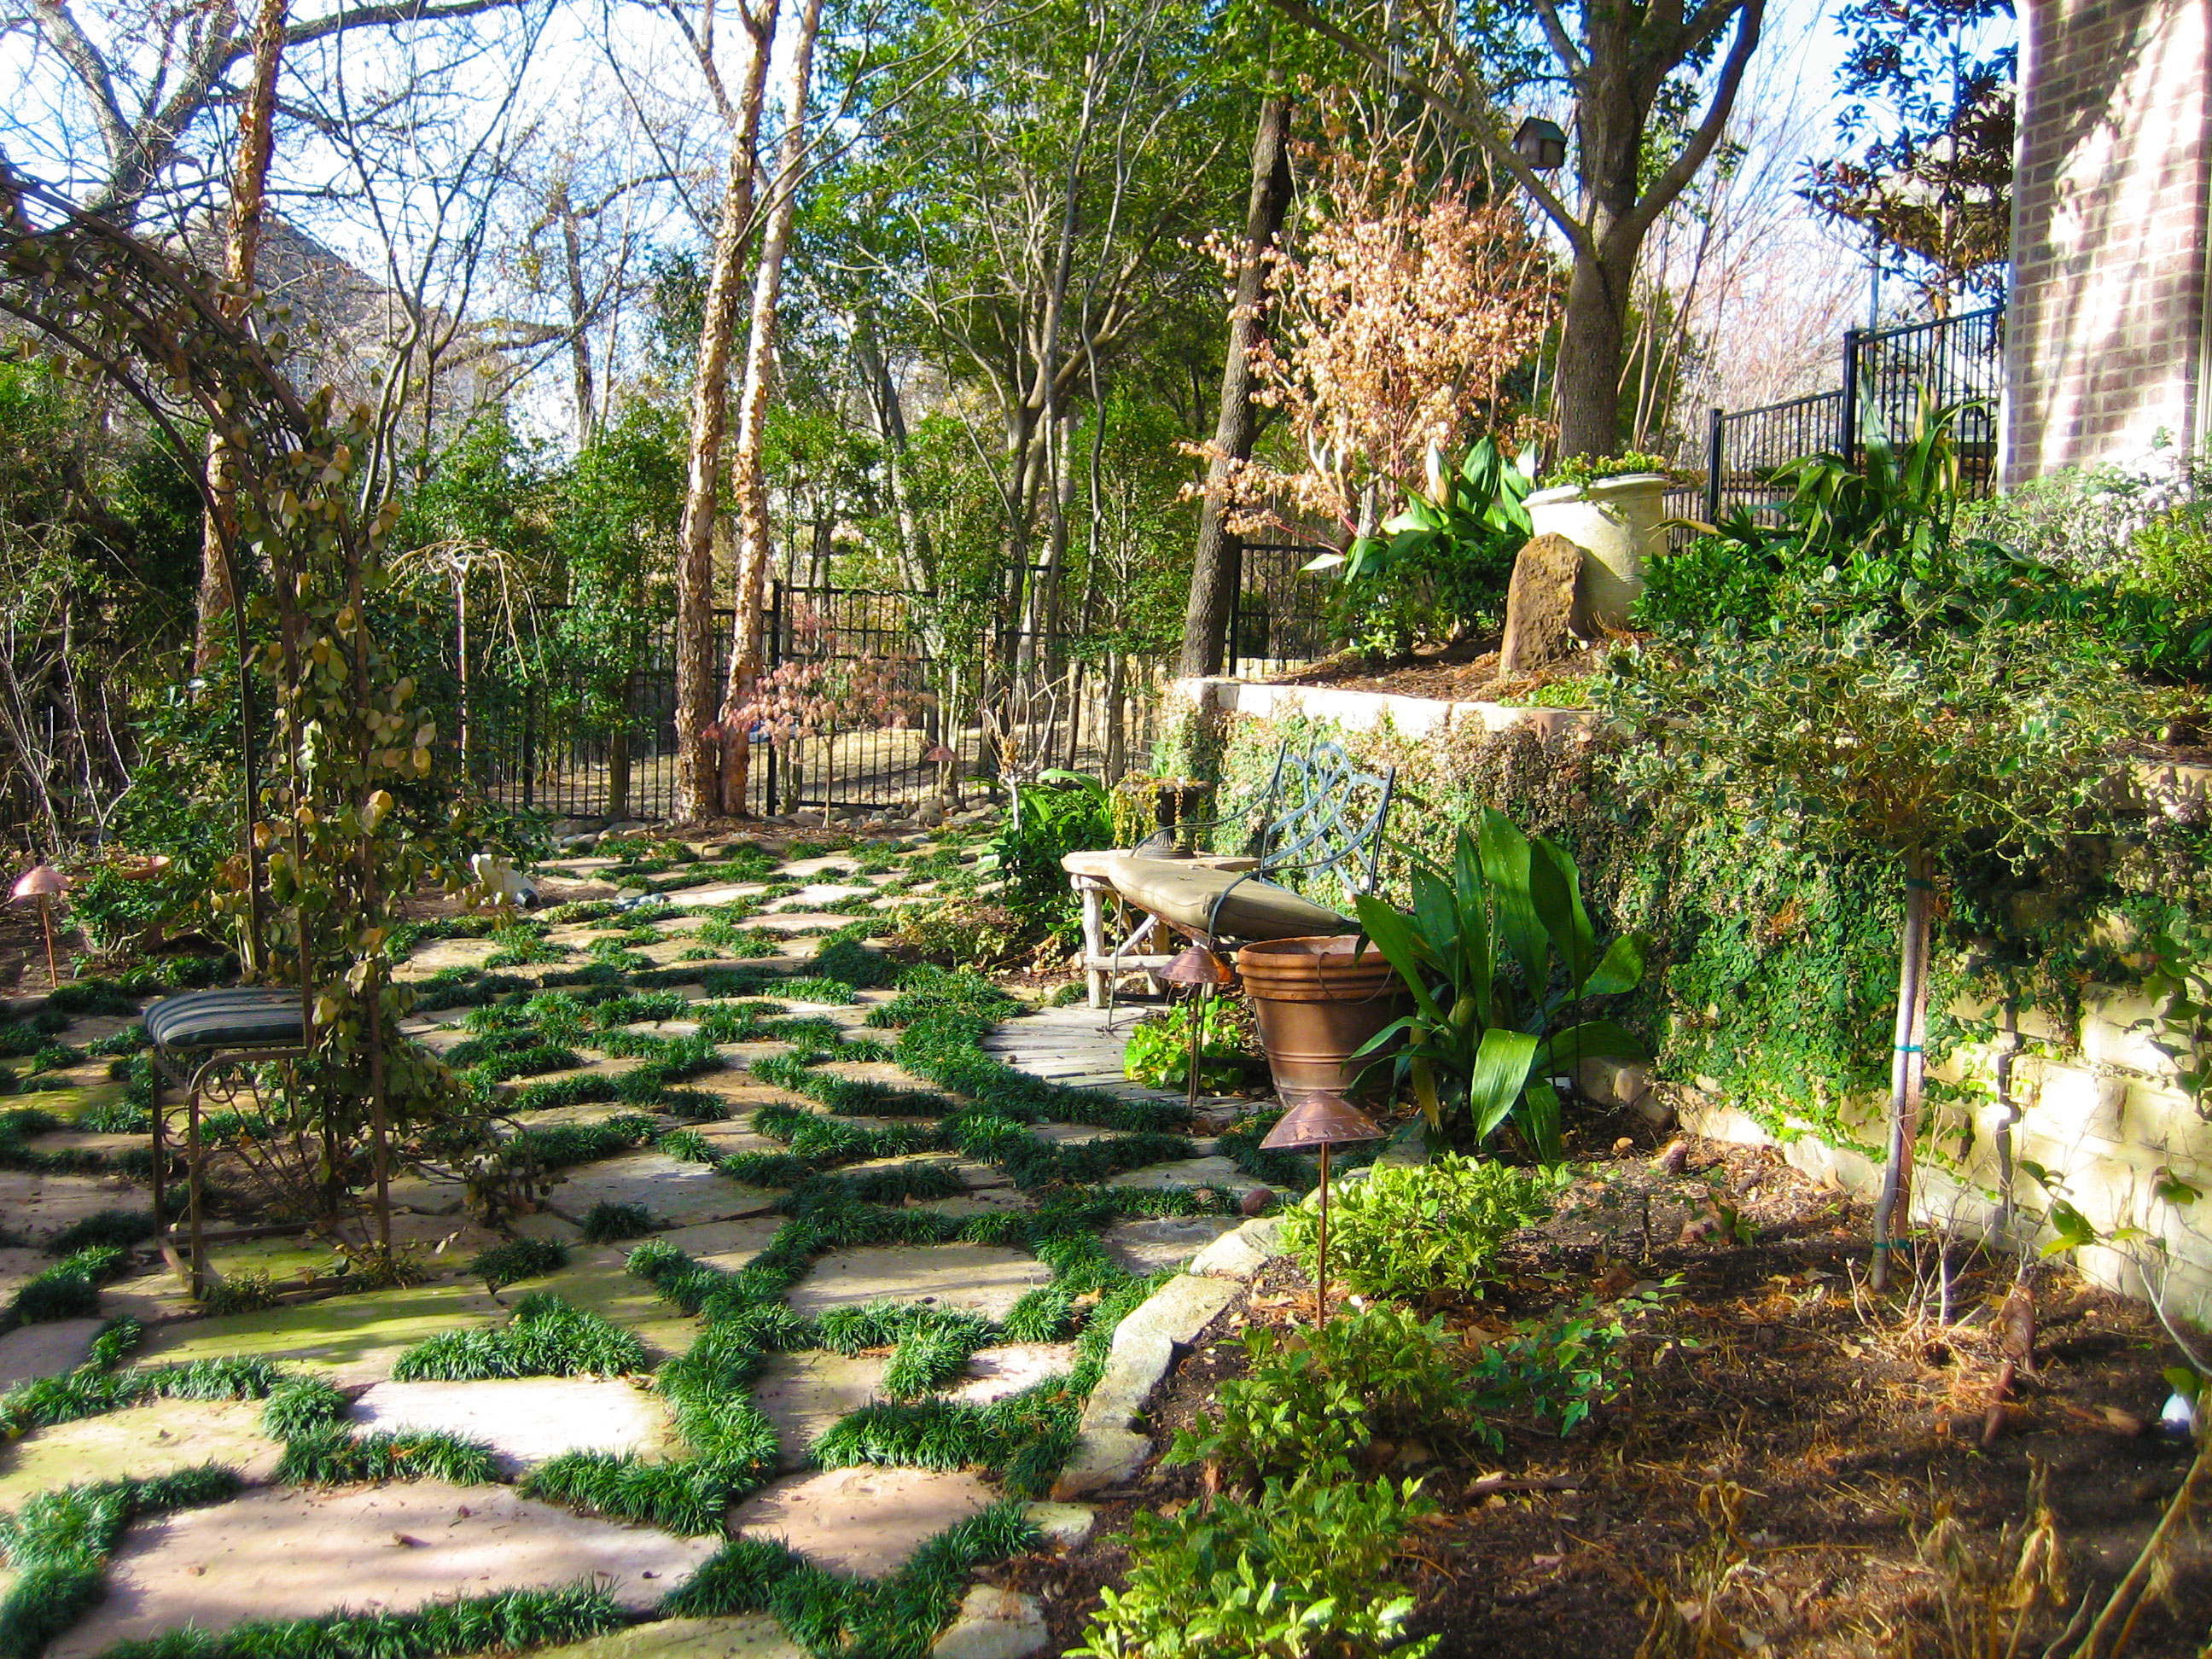 Logan landscaping for Landscaping ideas for wooded areas